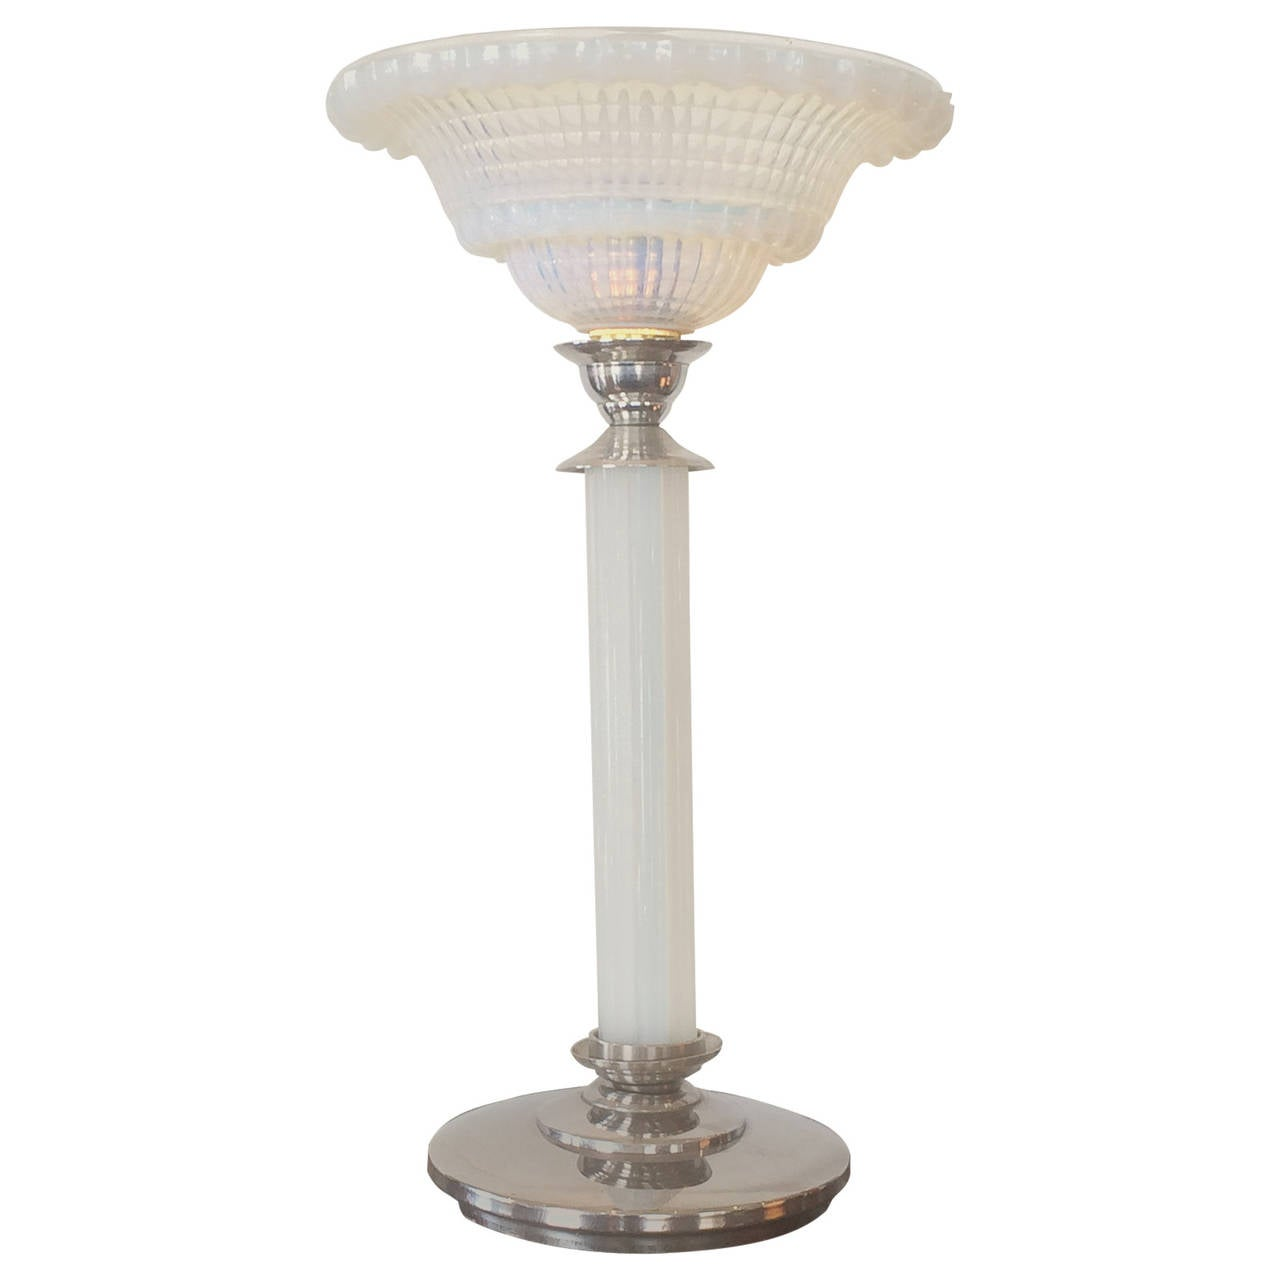 Art Deco French Glass Table Lamp With Opalescent Ezan